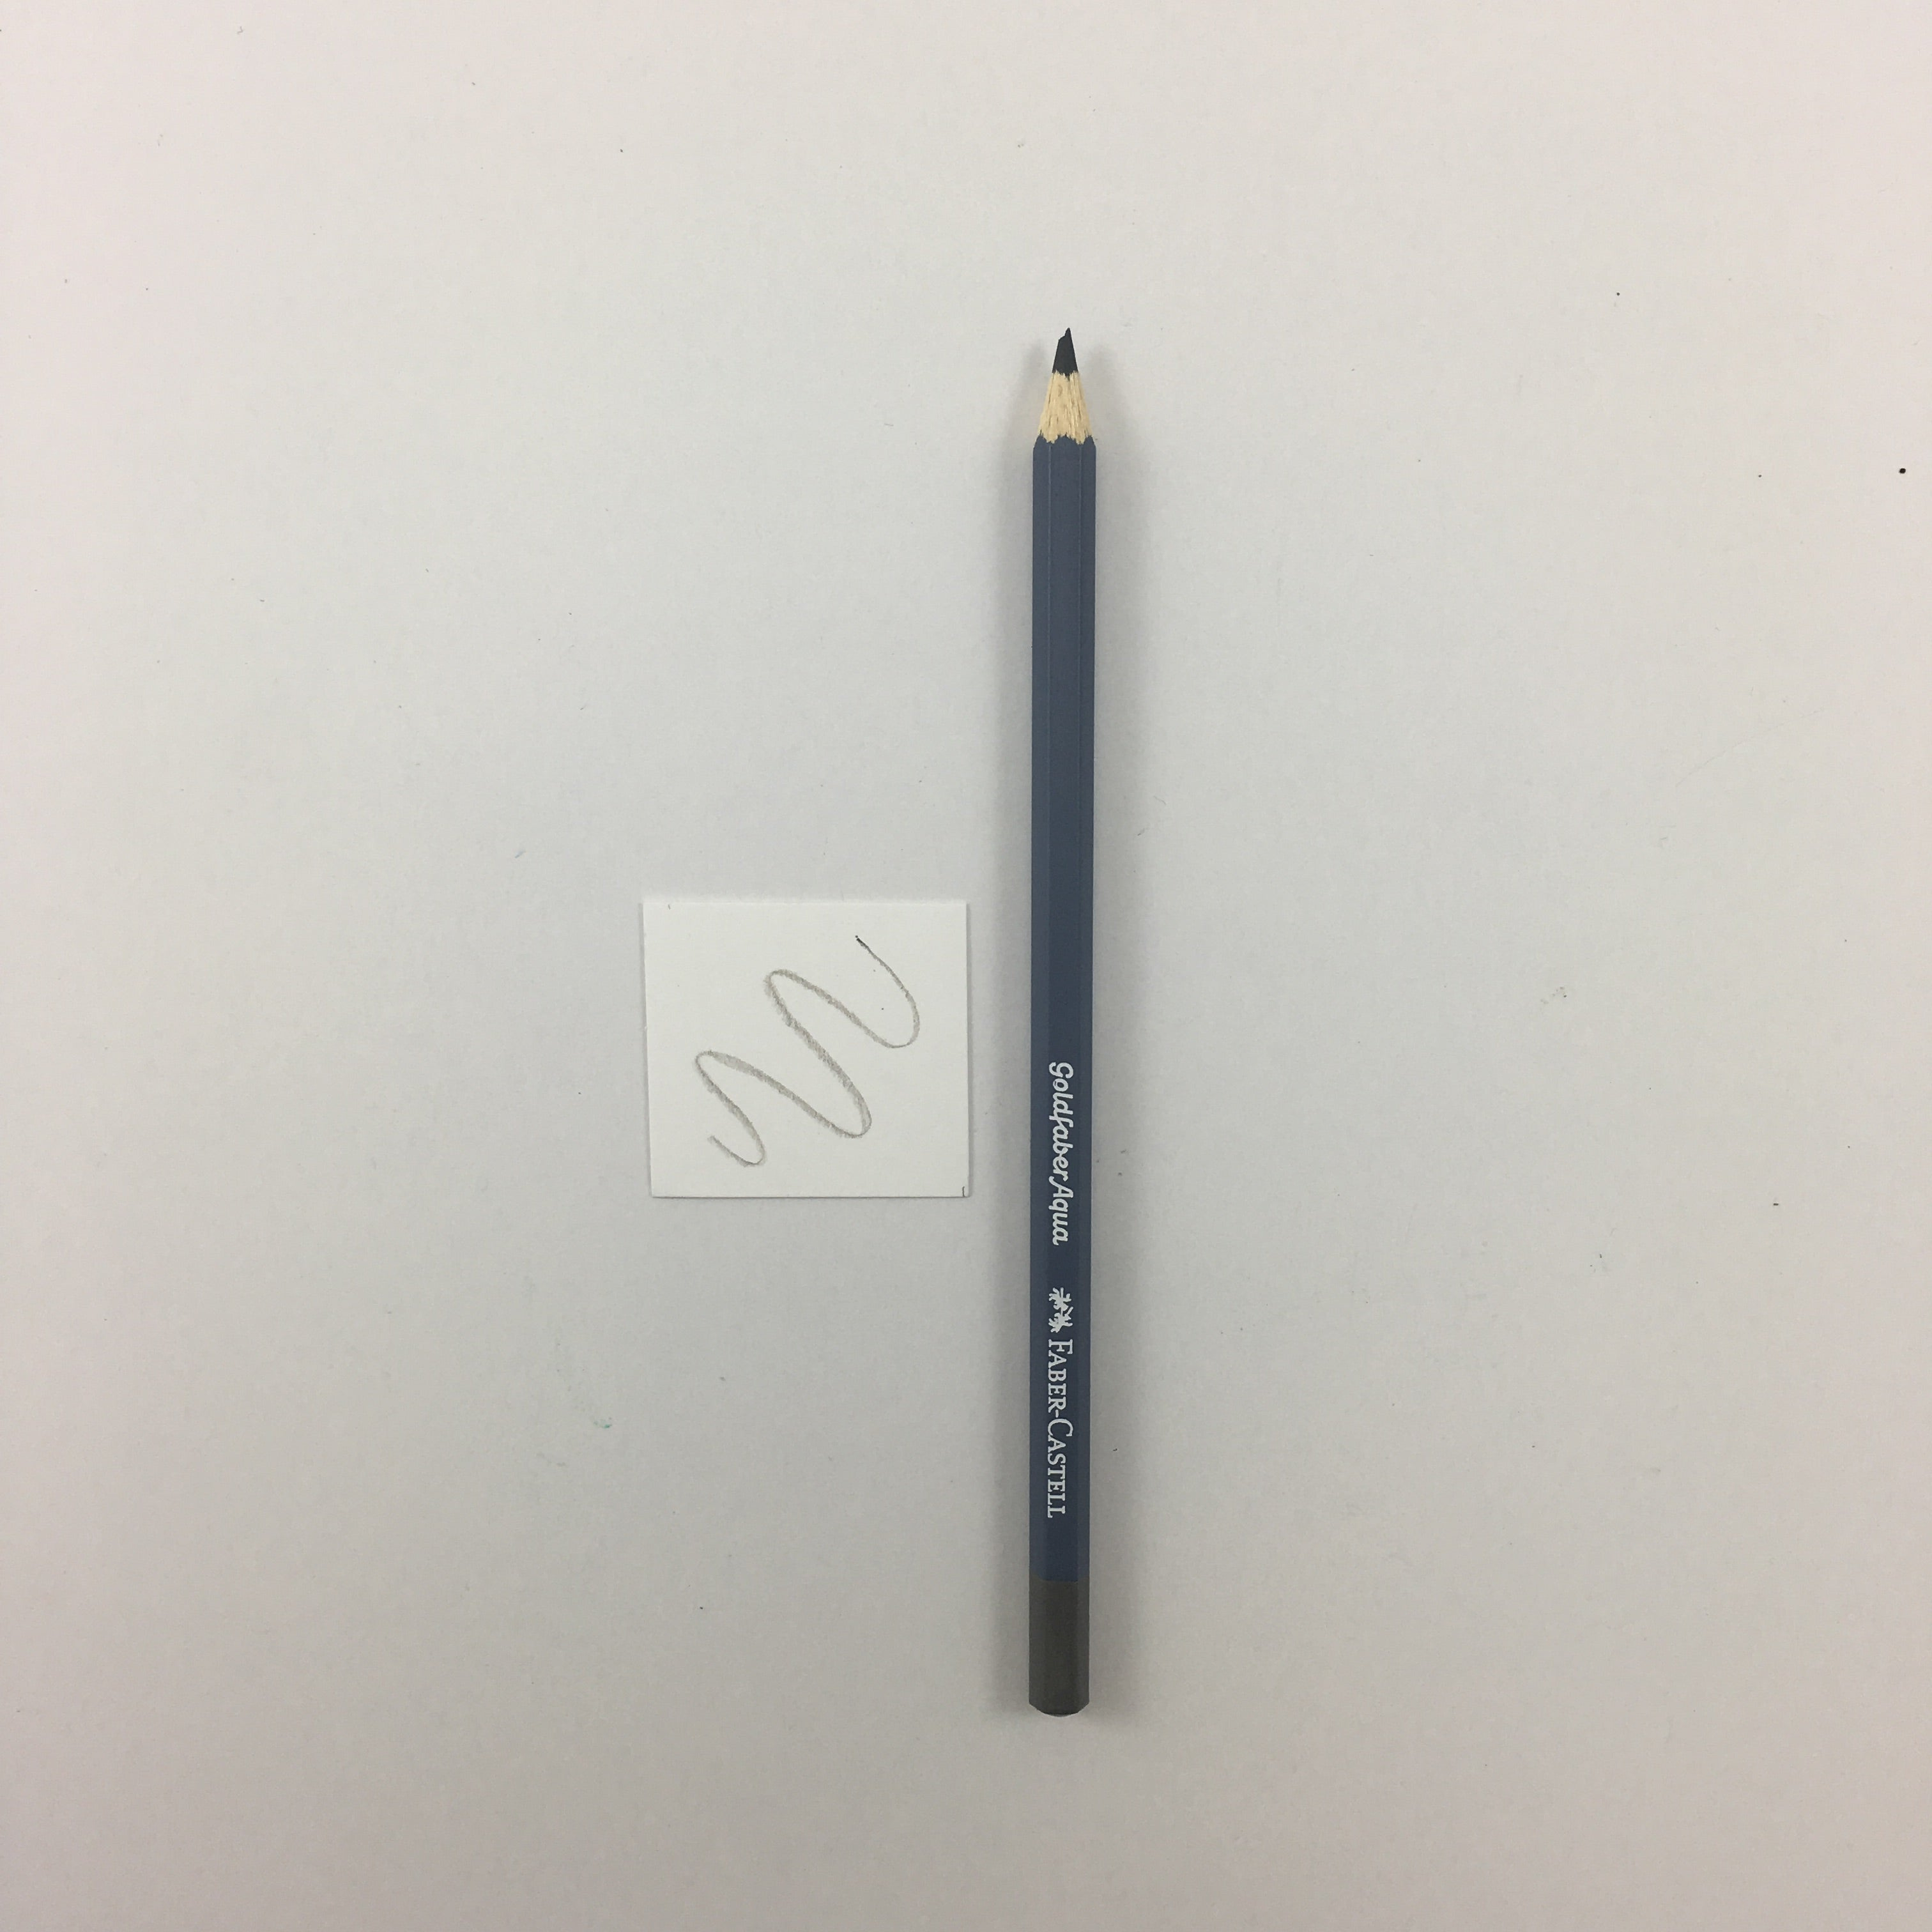 Faber-Castell Goldfaber Aqua Watercolor Pencils - Individuals - 273 - Warm Gray IV by Faber-Castell - K. A. Artist Shop